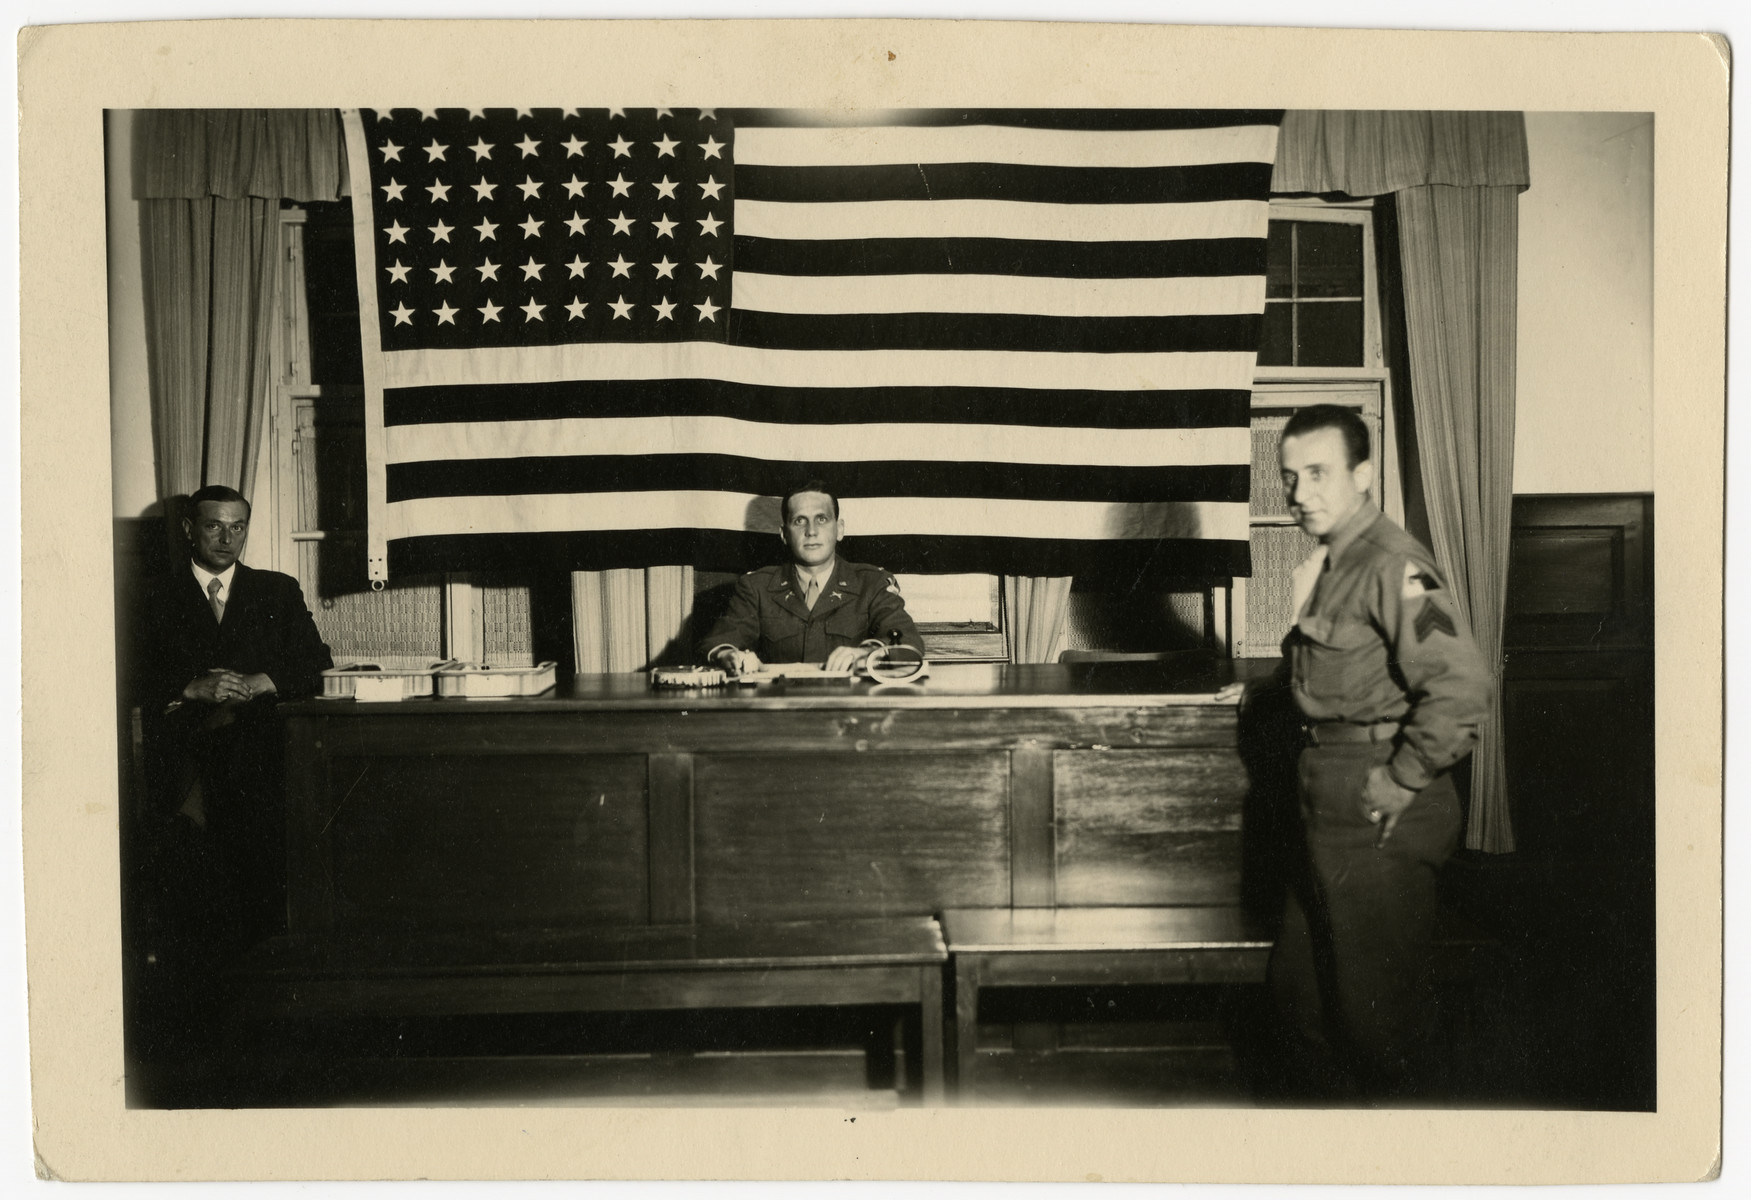 Jacob Postman, a Viennese Jewish emigre, serves as a  translator for the U.S. Army in an unidentified war crimes trial.    Jacob Postman is standing on the far right.  Lt. Kizer is sitting at the desk in front of the flag.